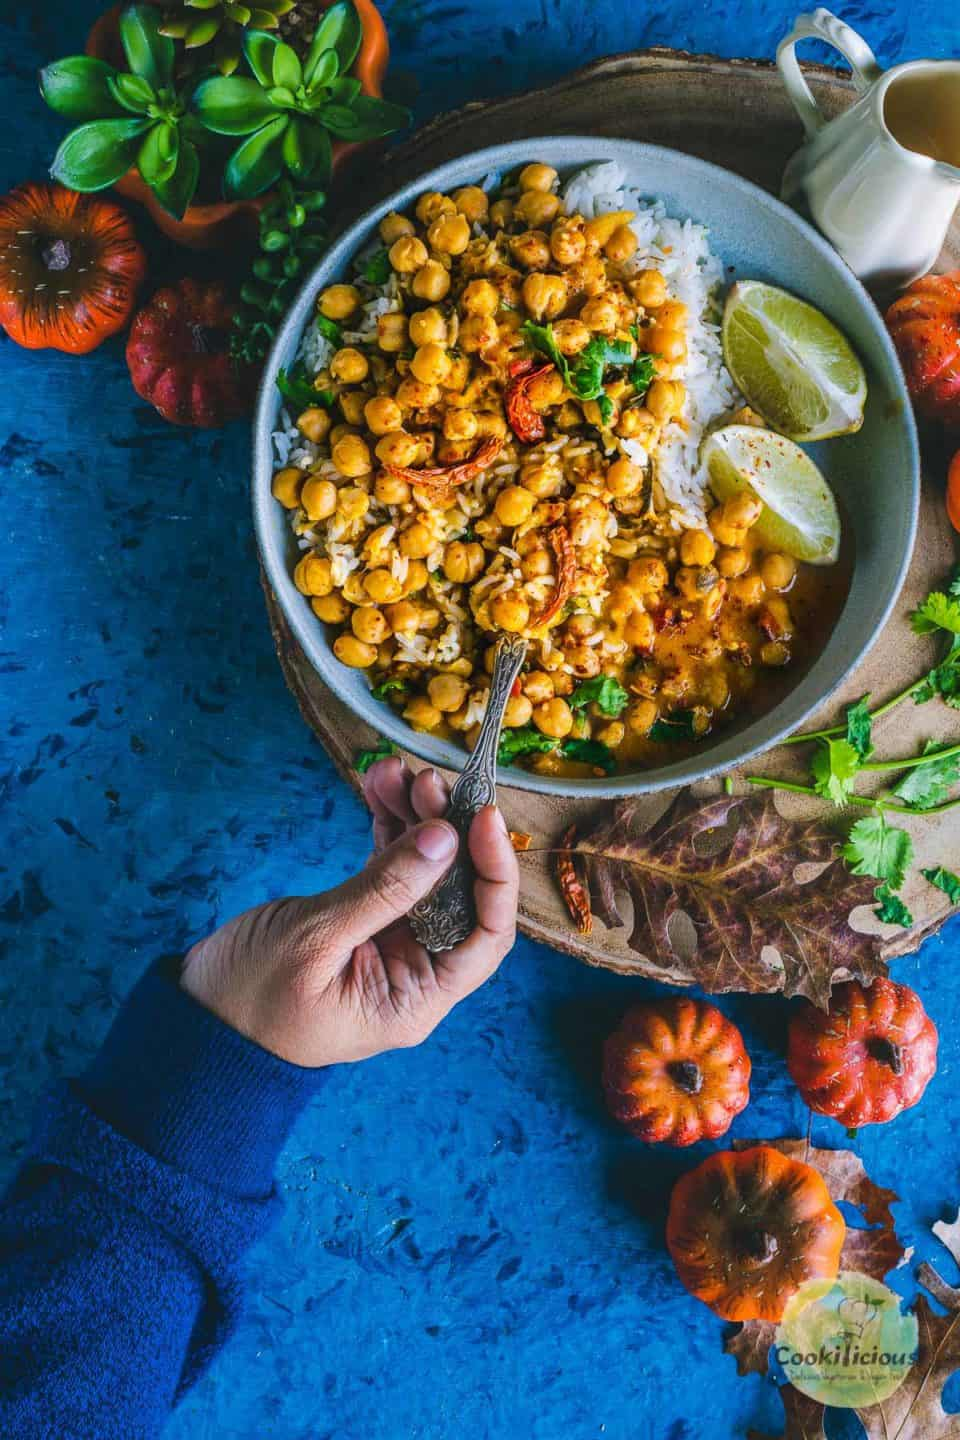 a hand holding a spoon and digging into a bowl of Instant Pot Butternut Squash Chickpea vegan Thai Curry